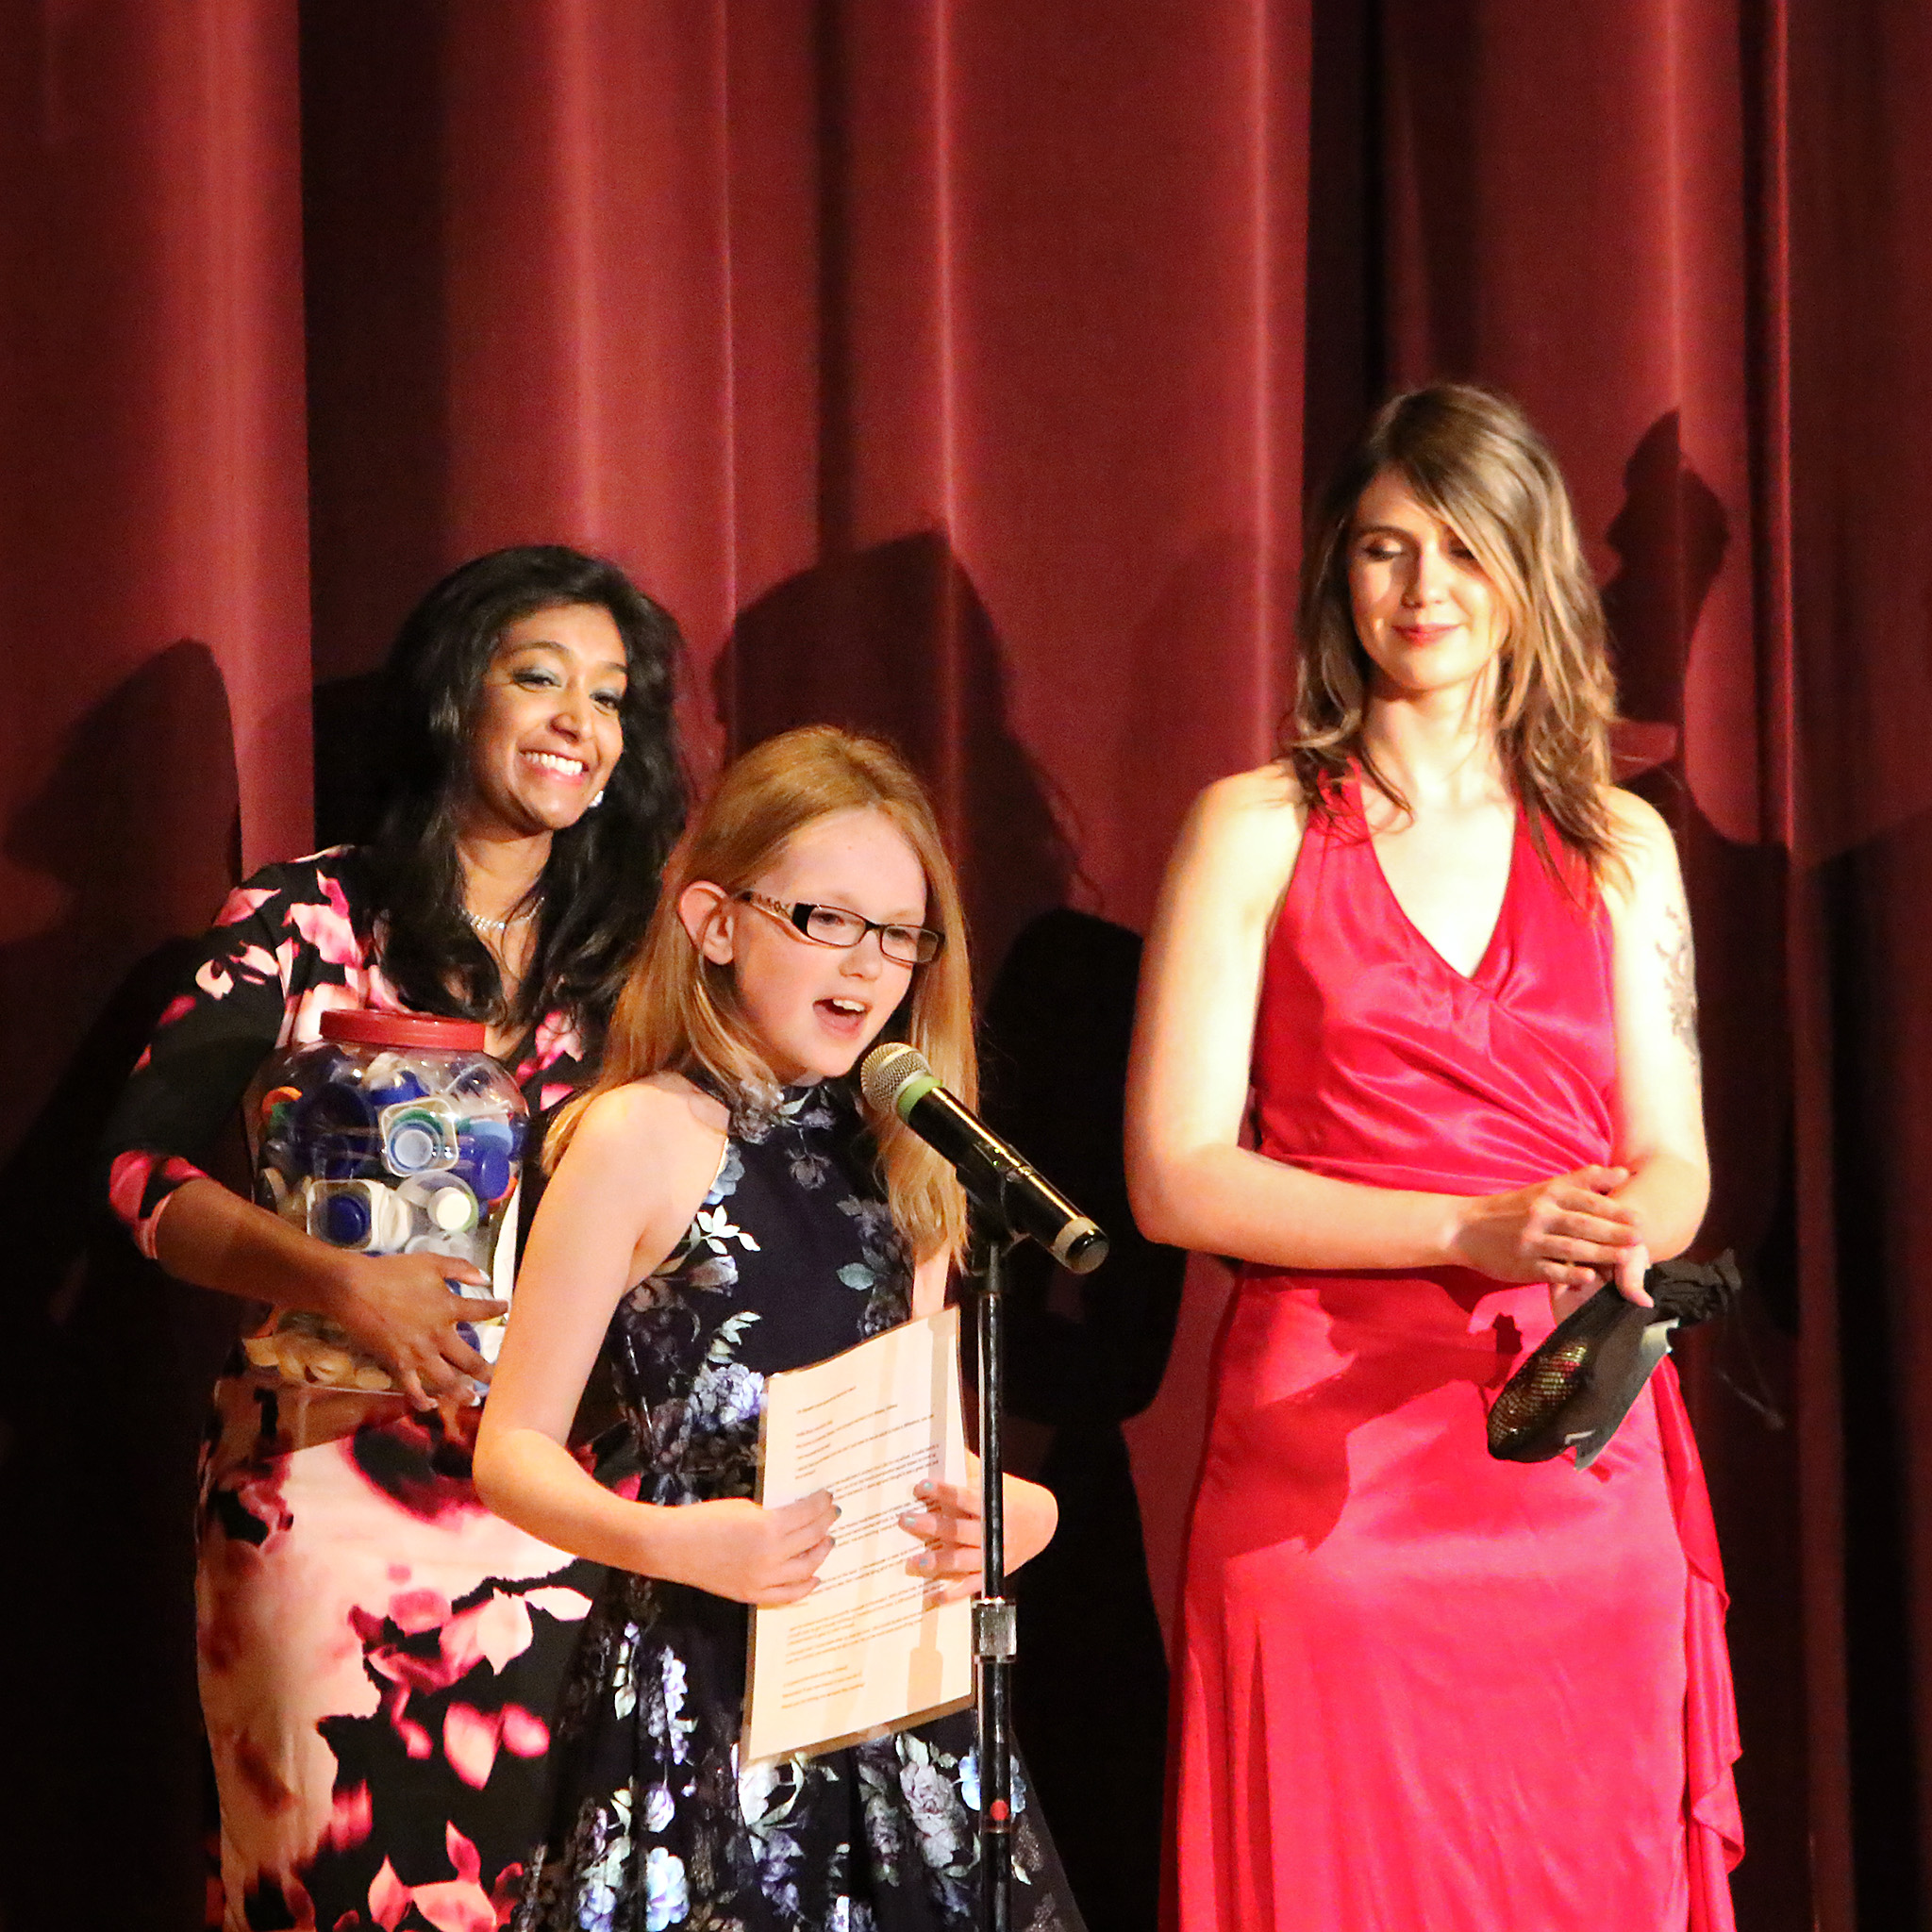 Giving my speech at the Embassy Theater after receiving my award! The lights were really bright